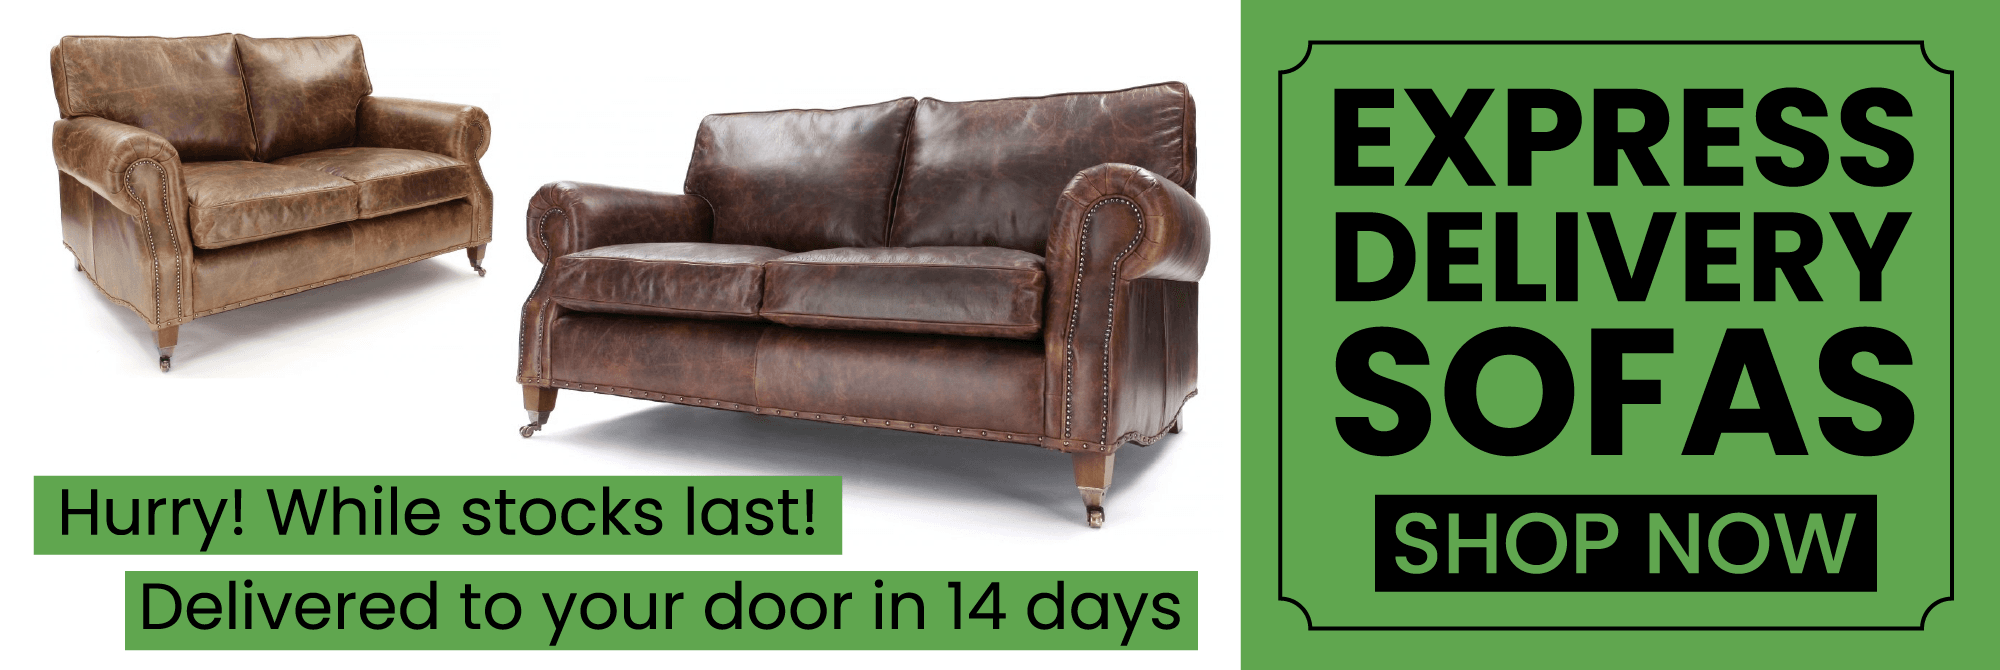 Express Delivery Sofas